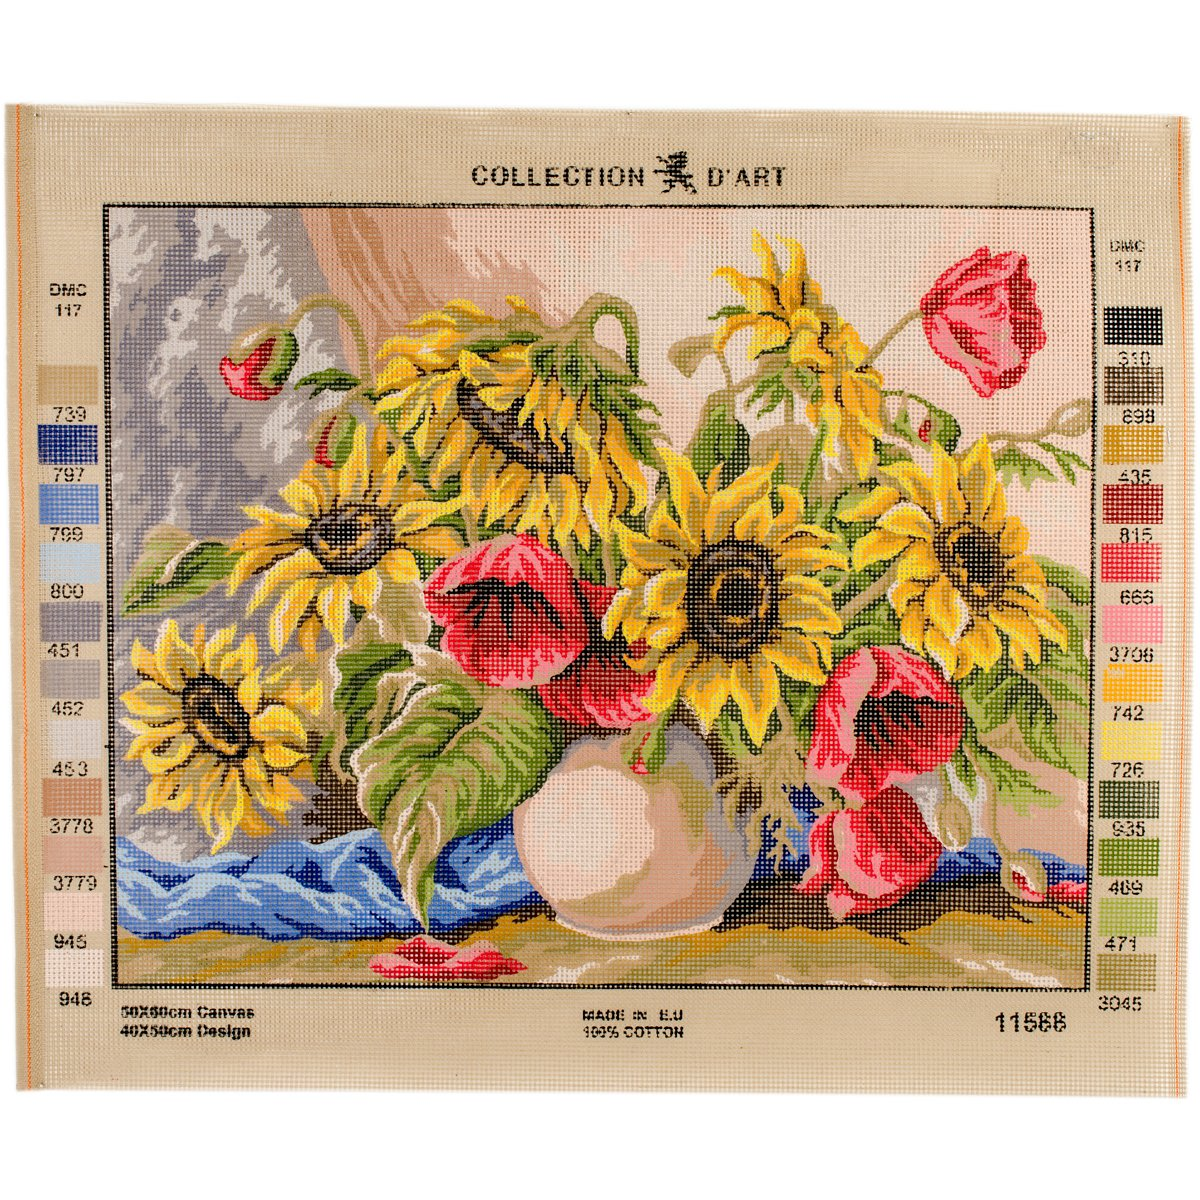 RTO Poppies & Sunflowers D'Art Needlepoint Printed Tapestry Canvas, 60 x 50cm 11588